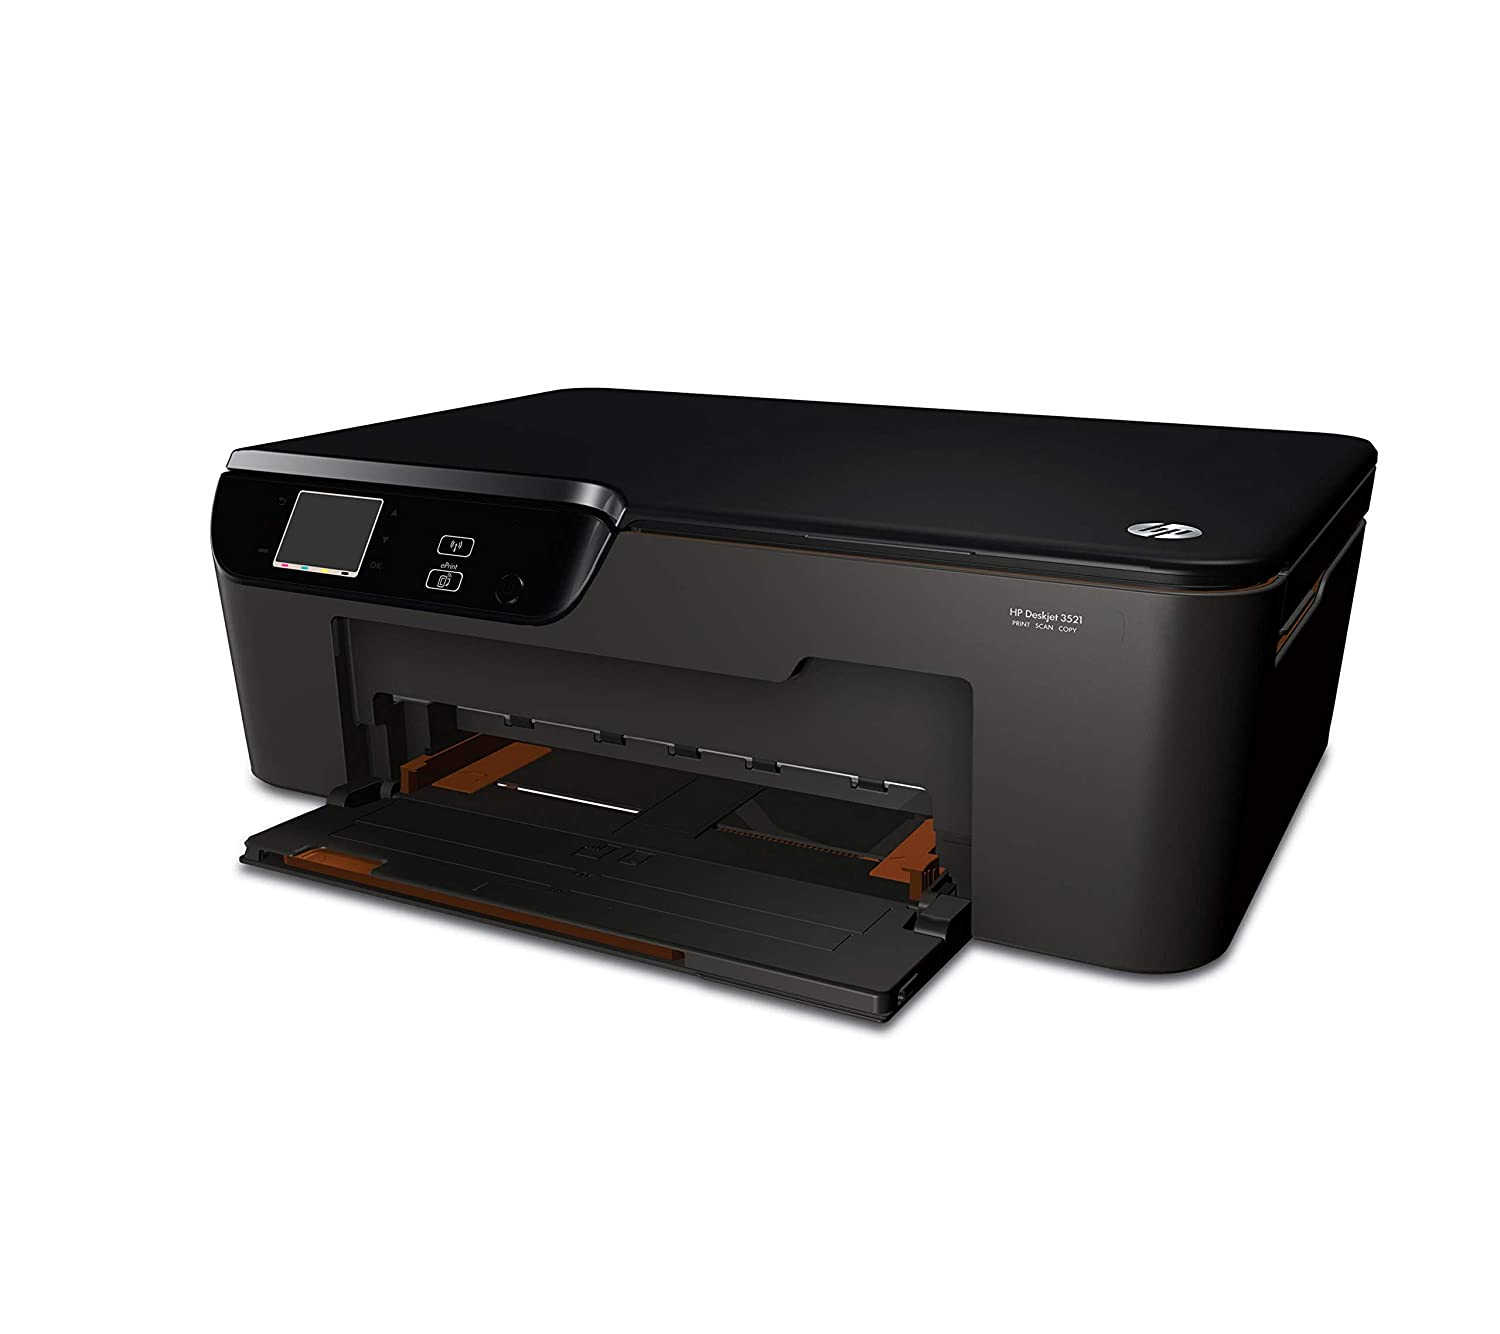 Amazon.com: HP Deskjet 3521 e-All-in-One Printer: Electronics